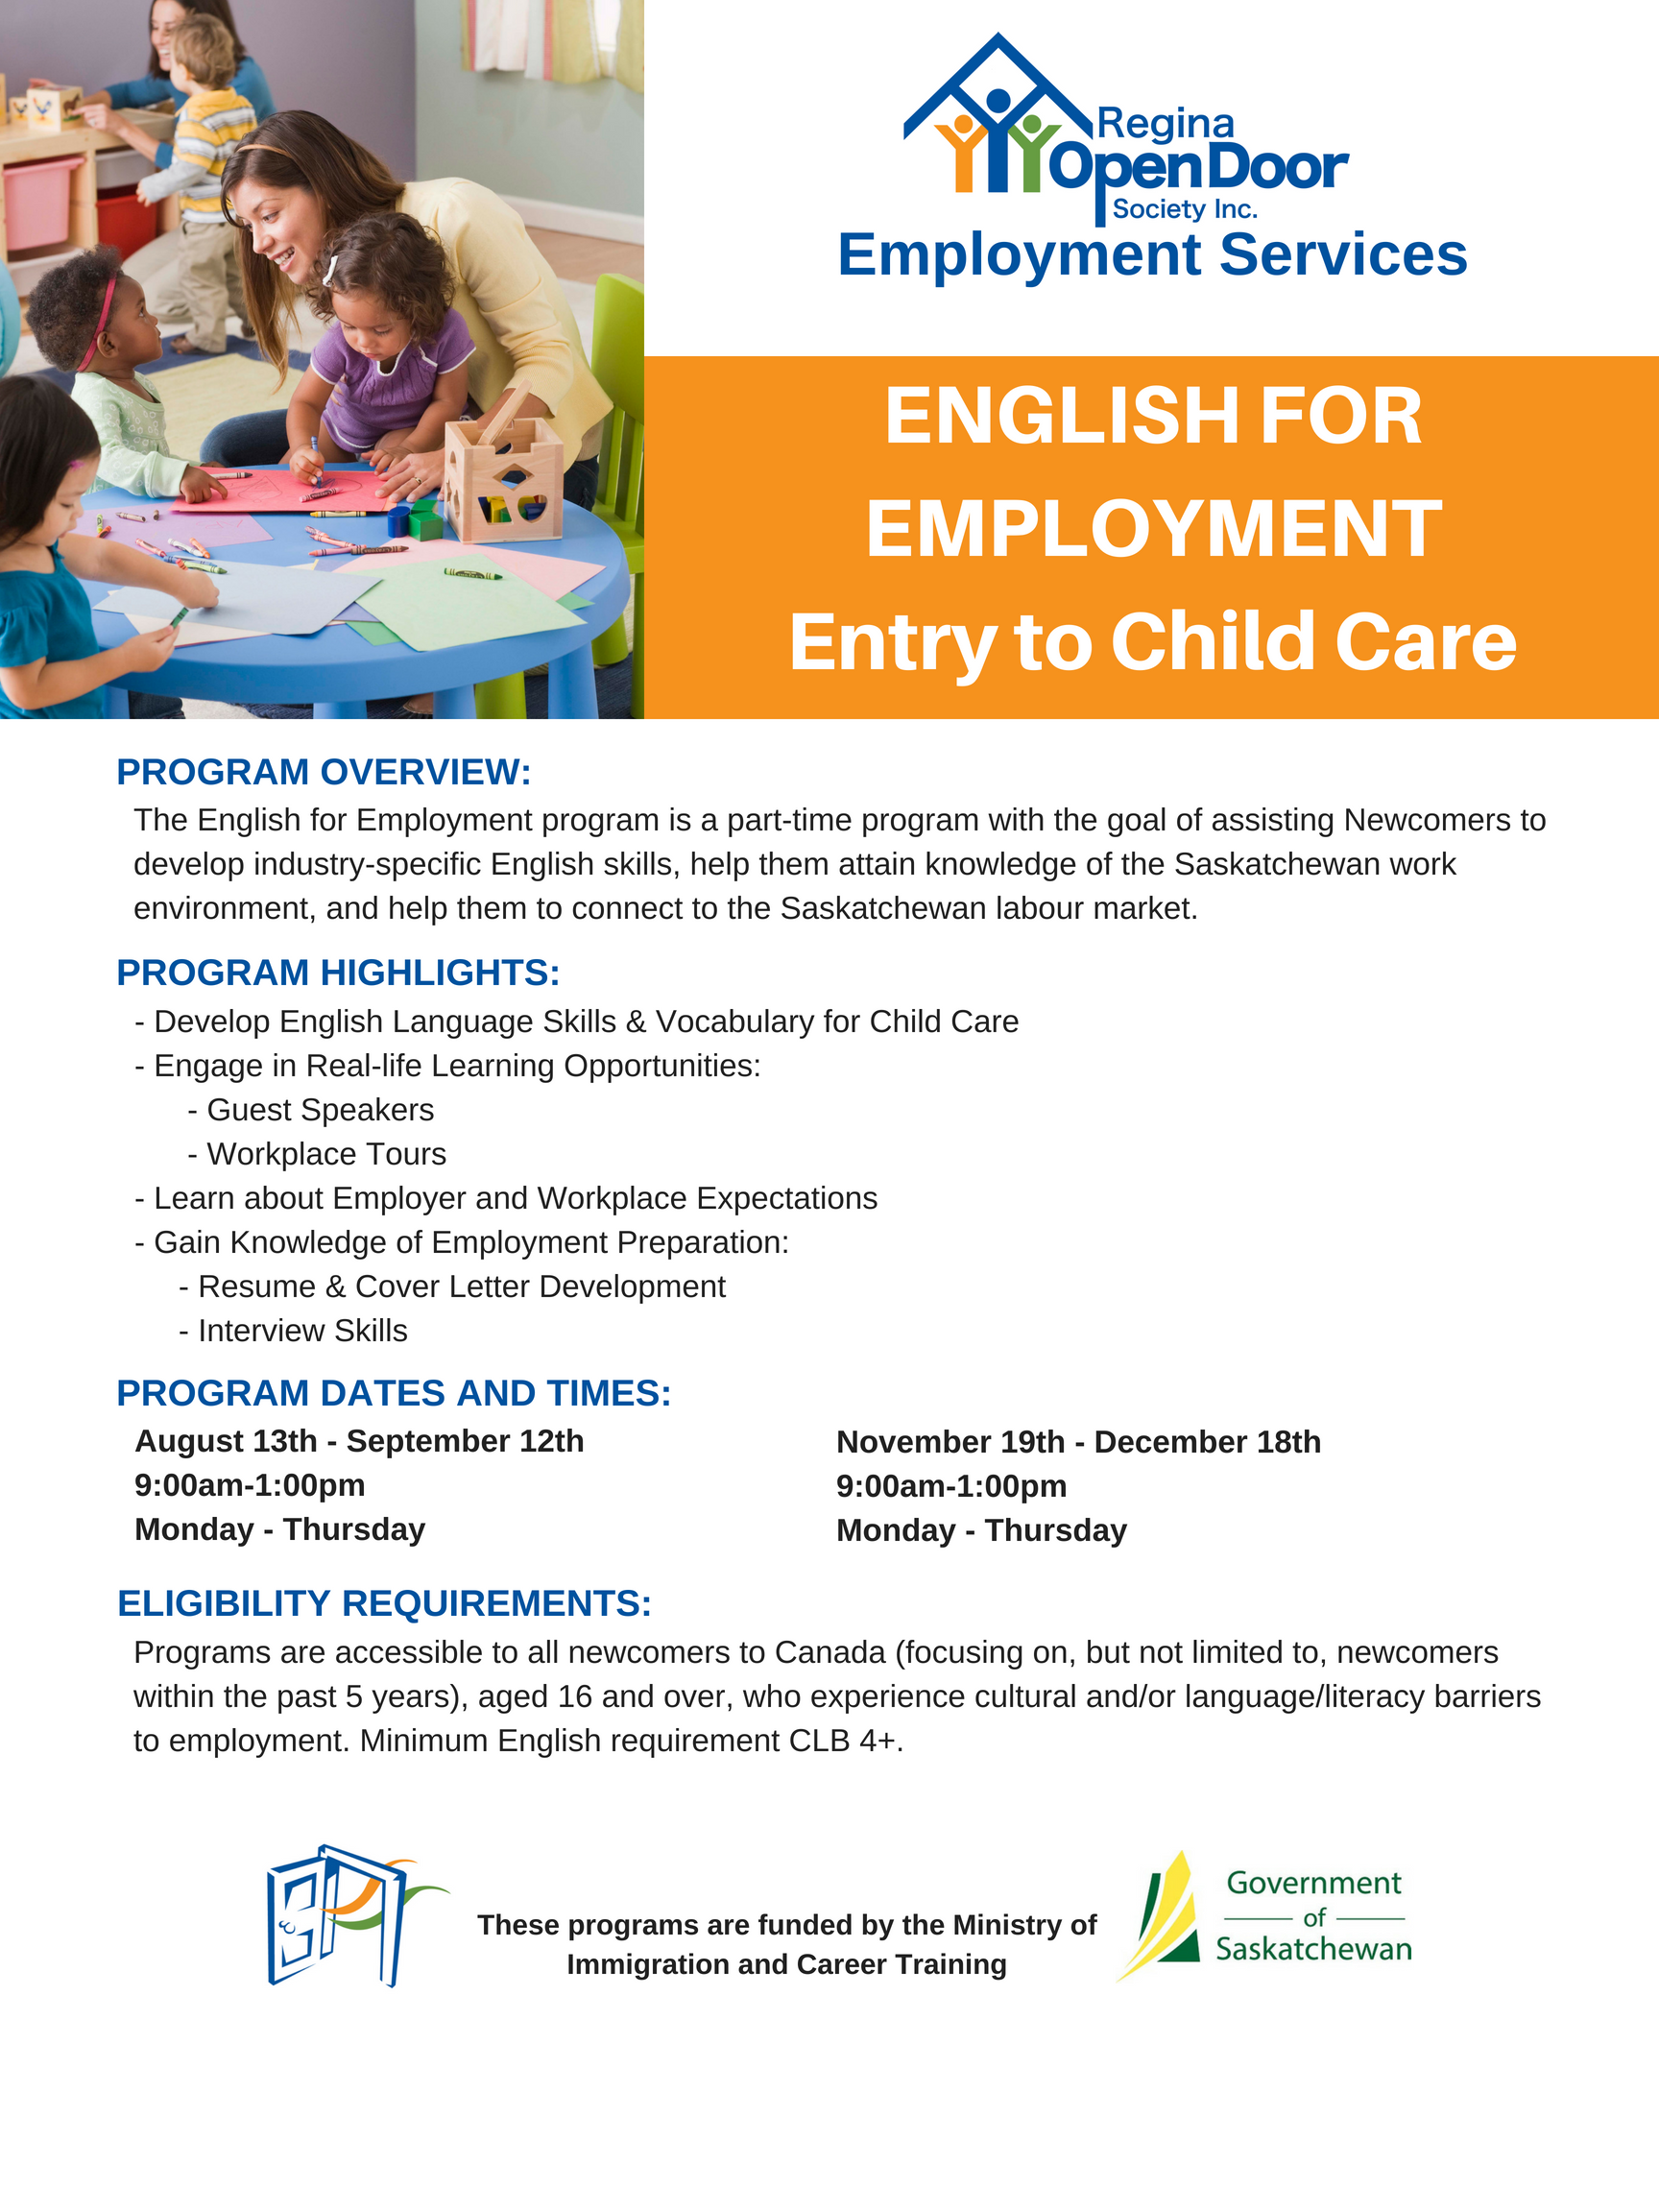 English for Employment Entry to Childcare - Image 1